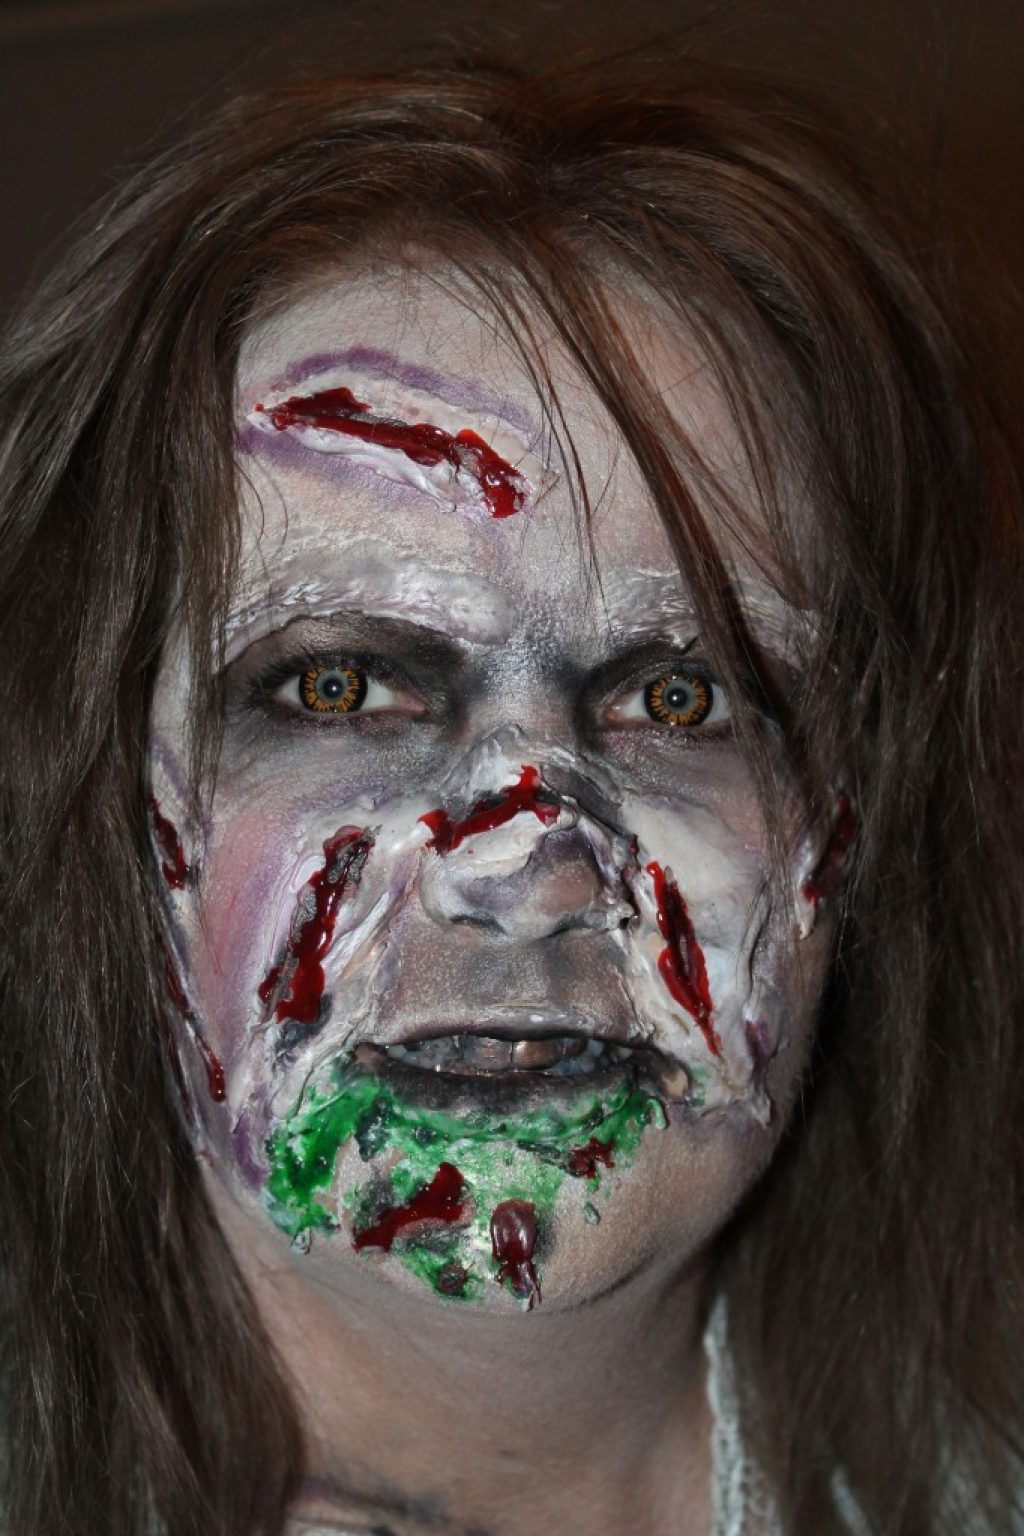 Colored Contacts, Halloween Contacts, Halloween Costume Ideas